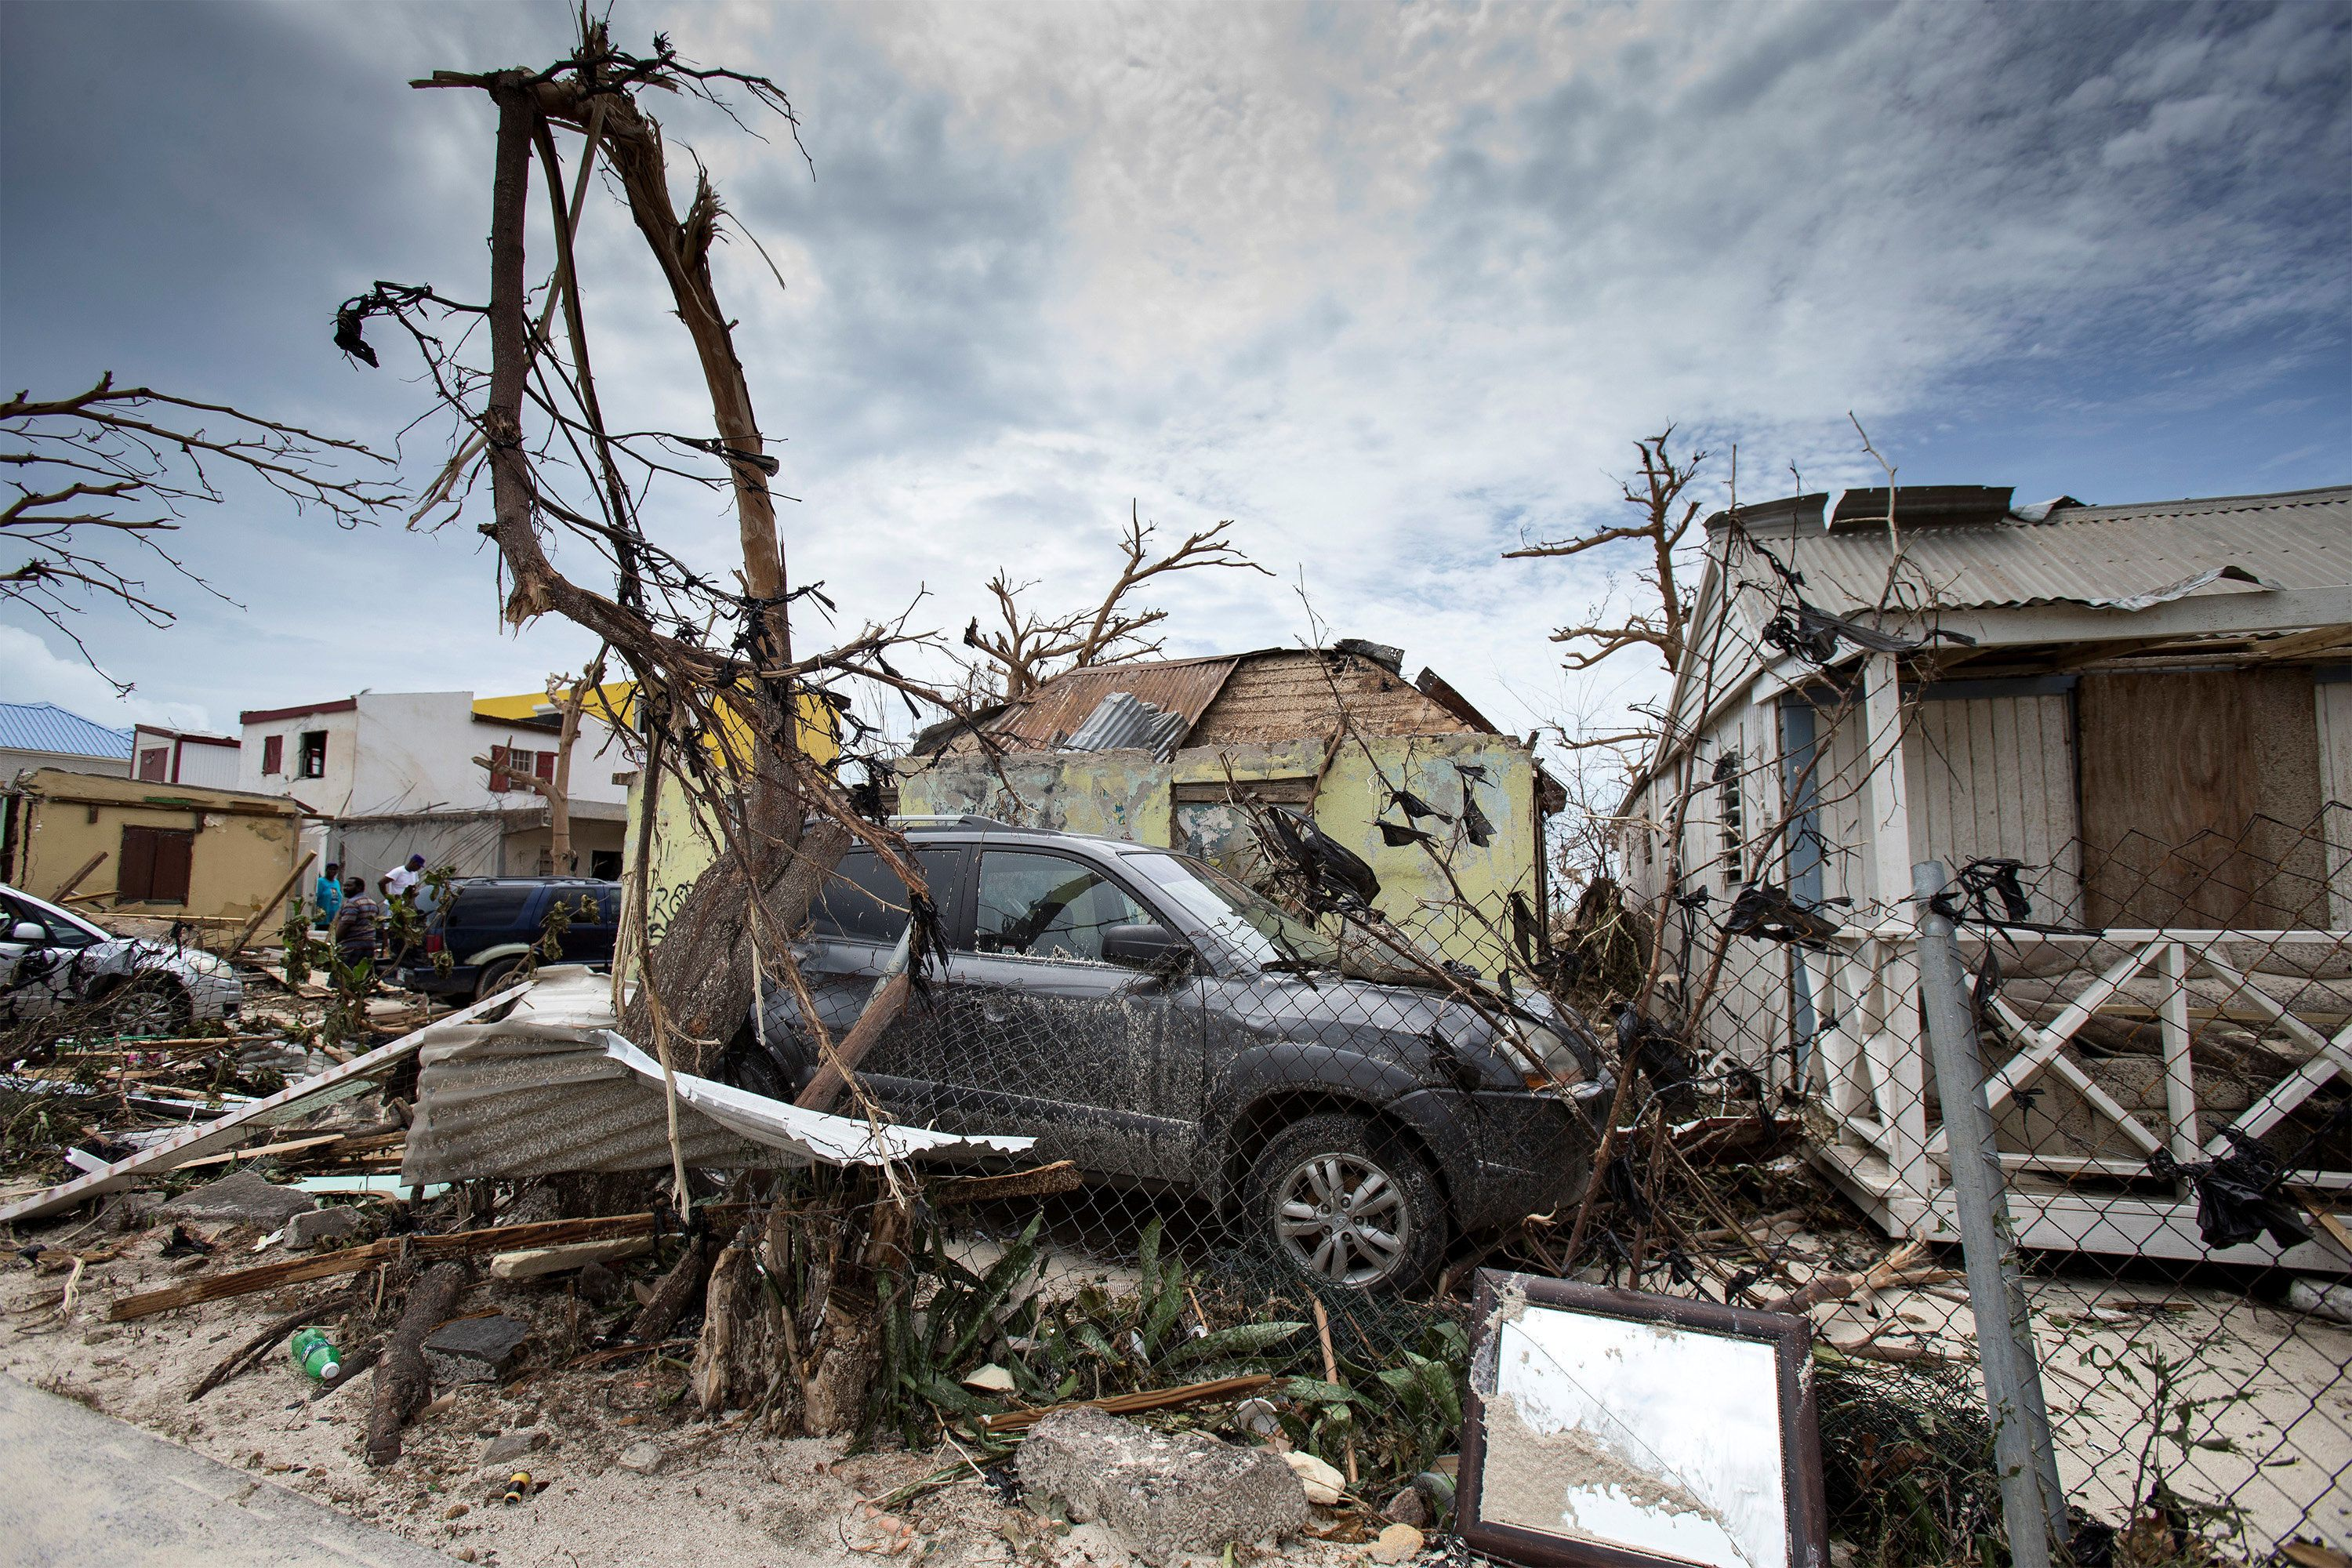 The aftermath of Hurricane Irma on the island of St